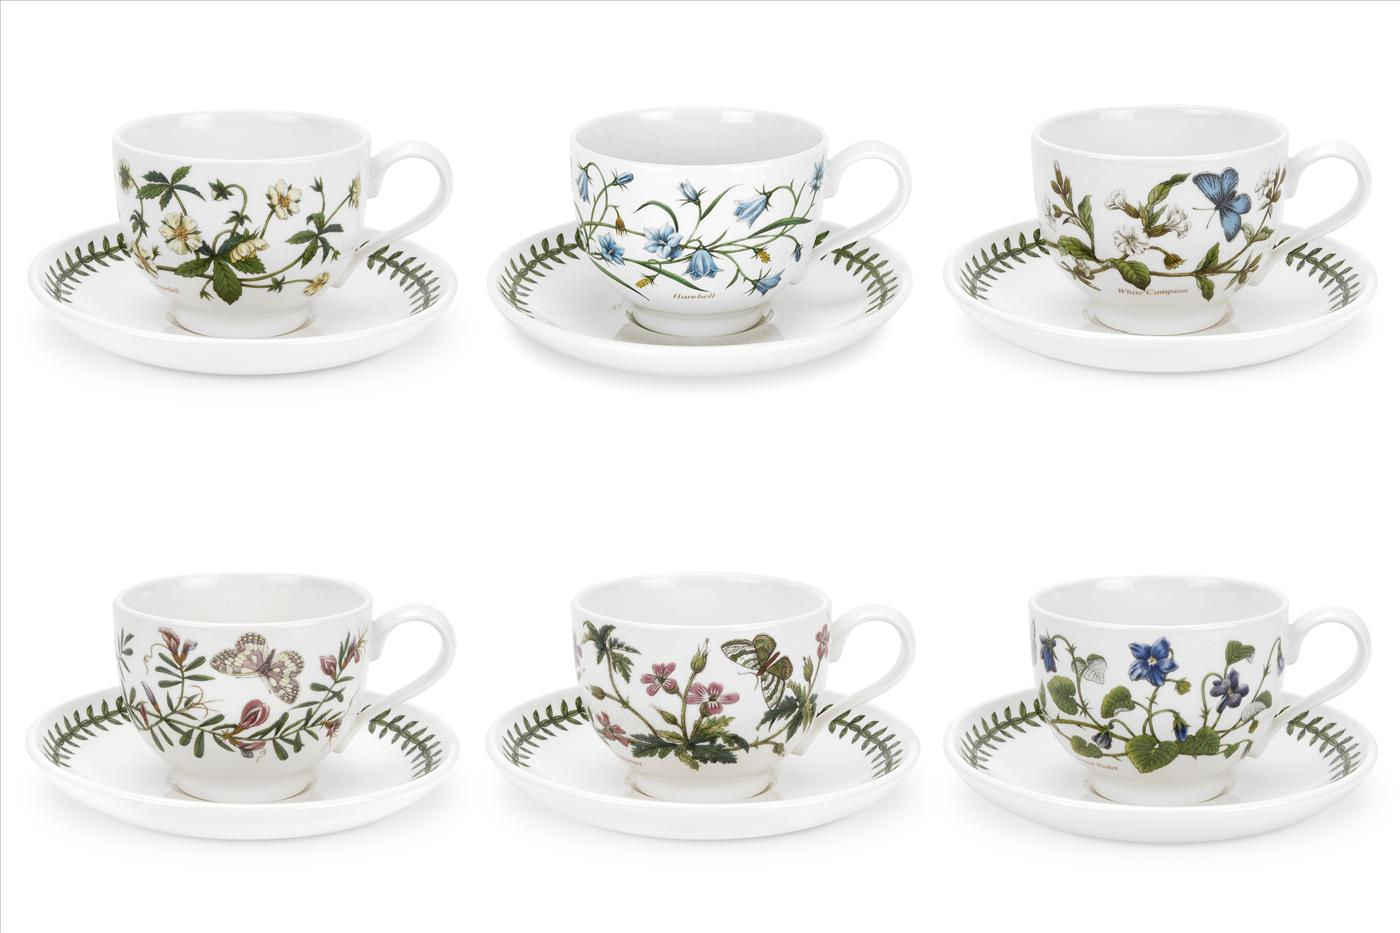 Botanic Garden Set of 6 Teacups & Saucers (T) Assorted Motifs image number 0